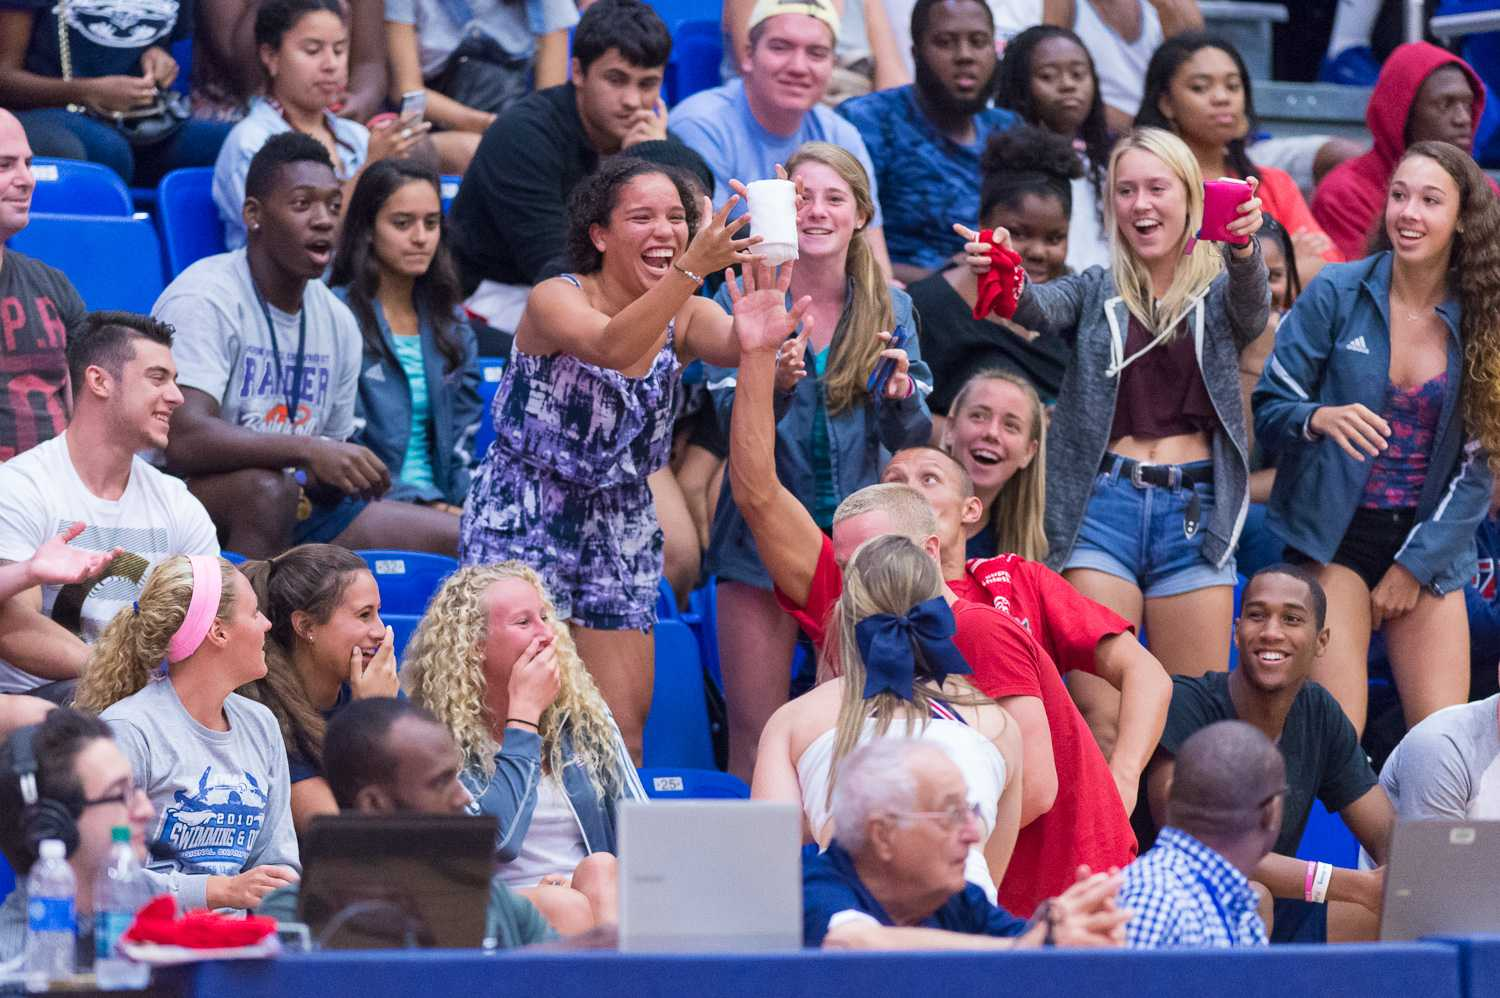 FAU v. Warner_MBB_NIKON D4S_11-17-14_1358_Lightroom